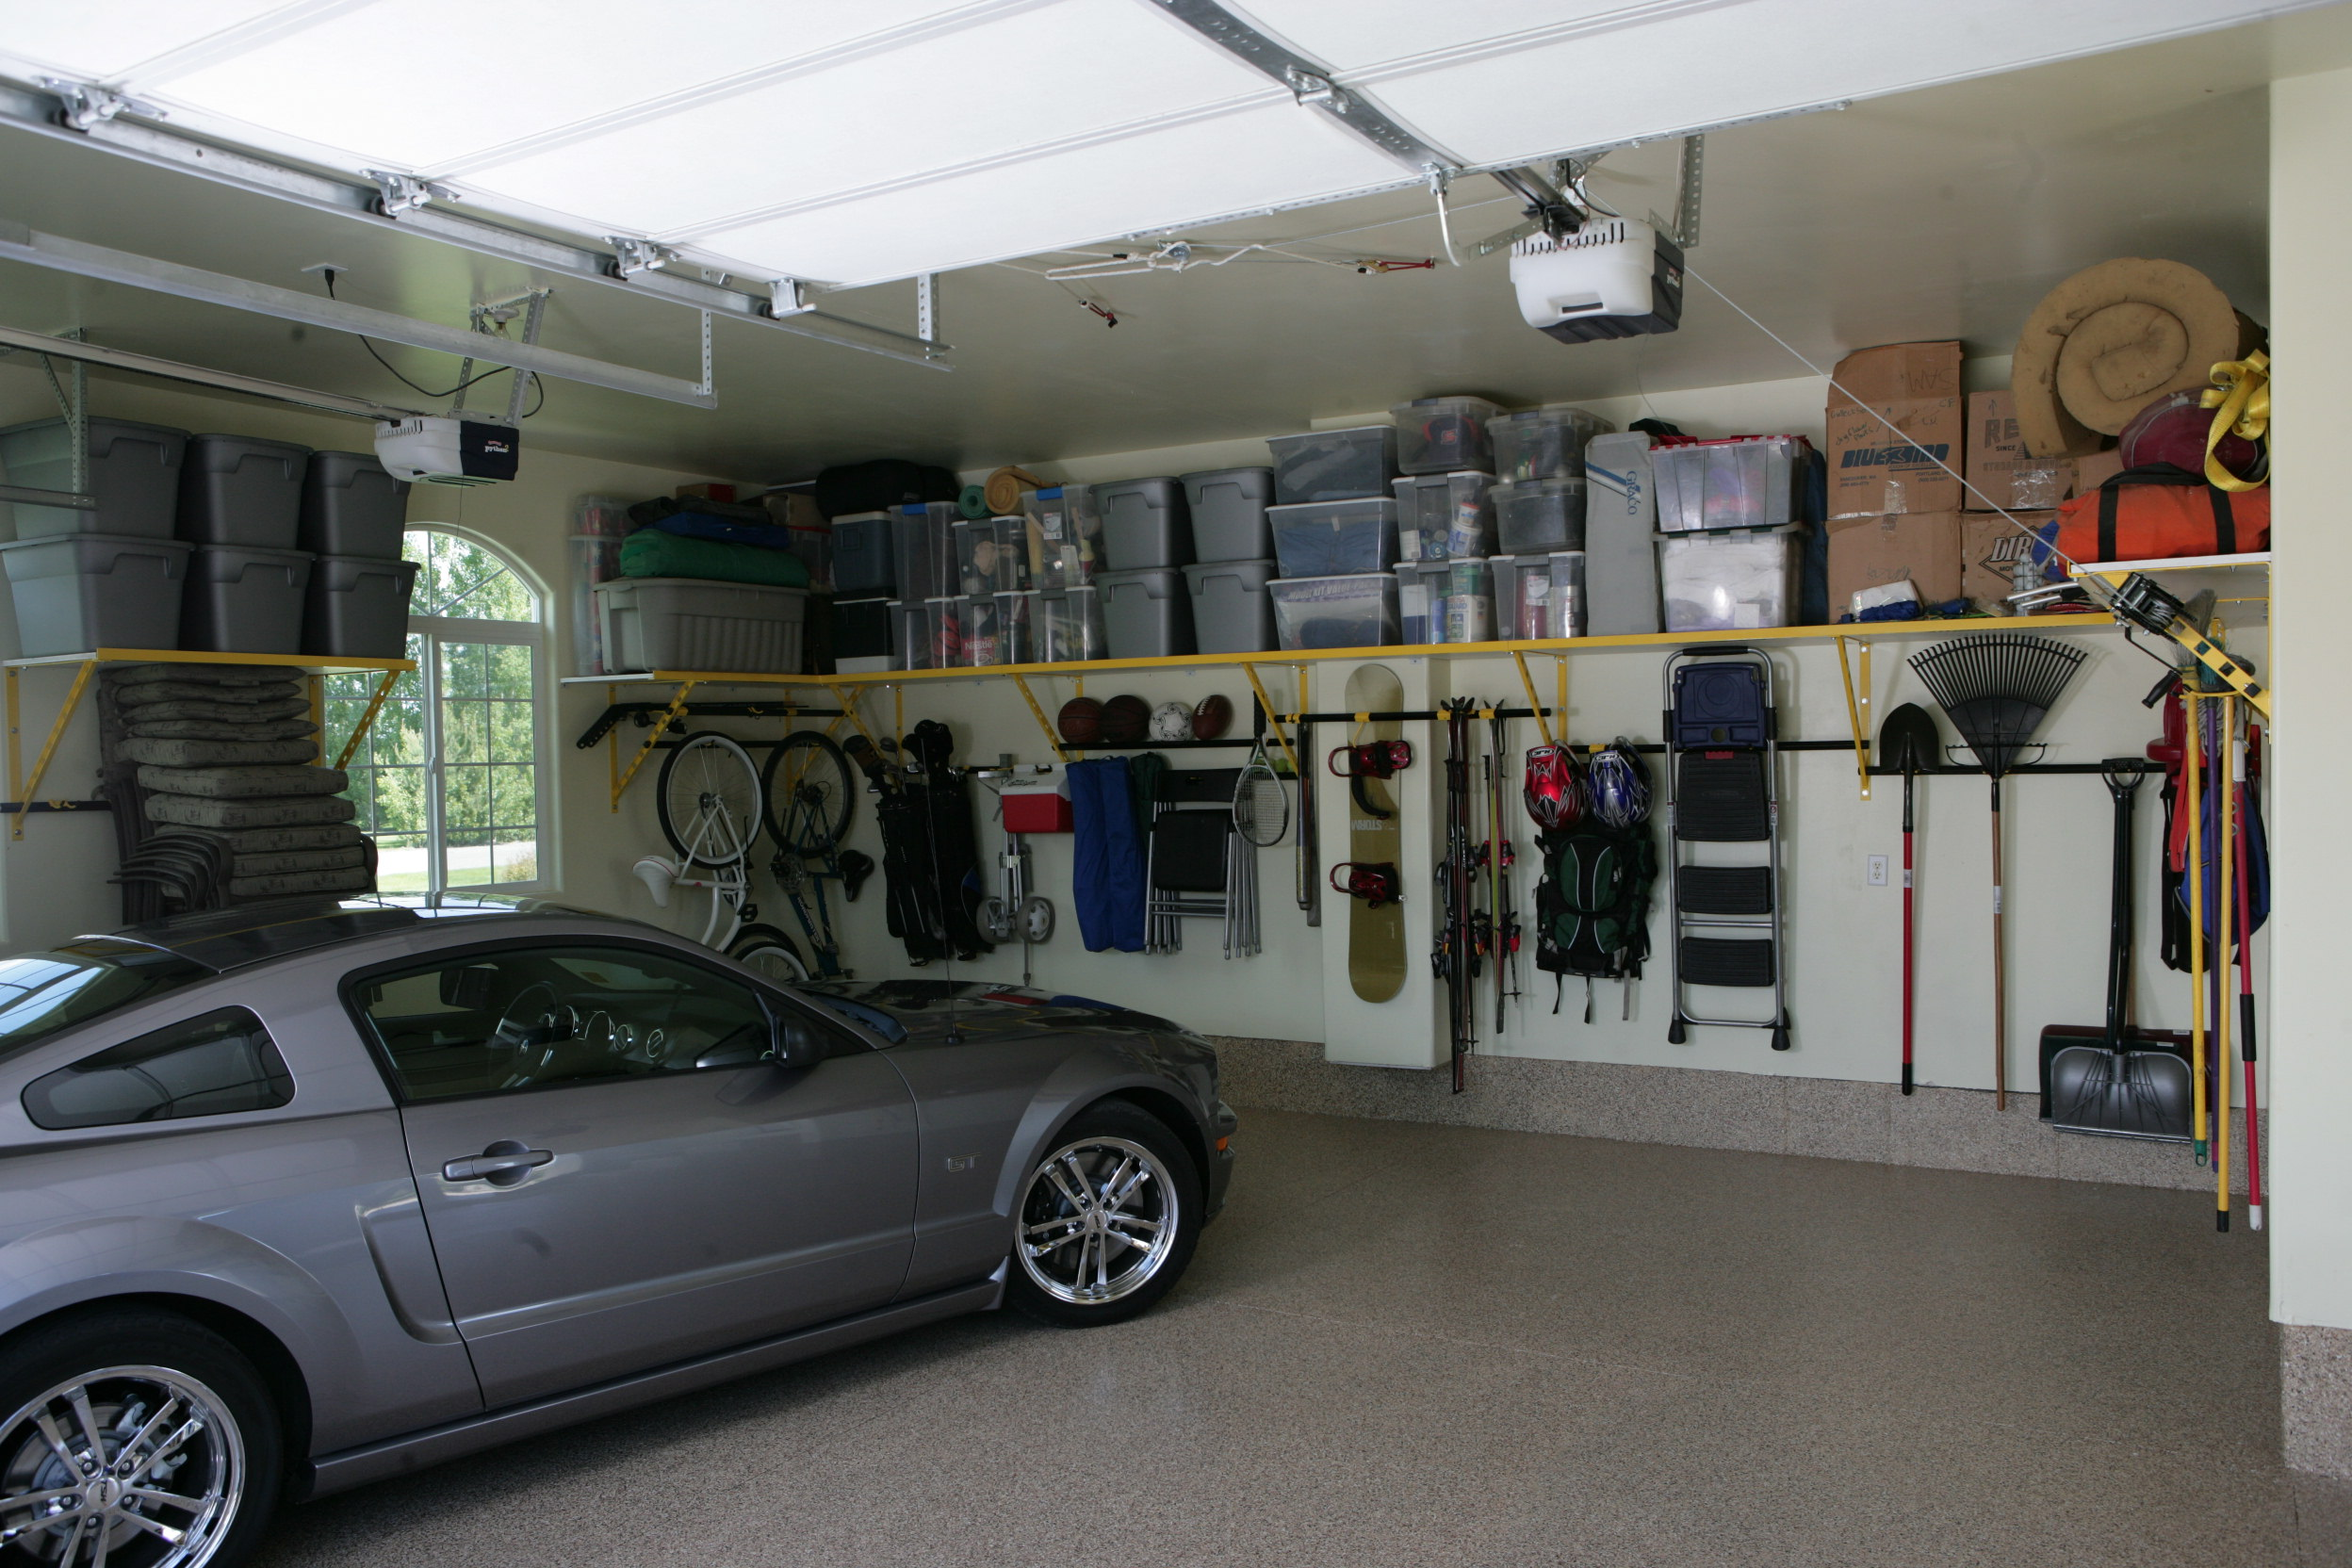 Missouri city garage shelving